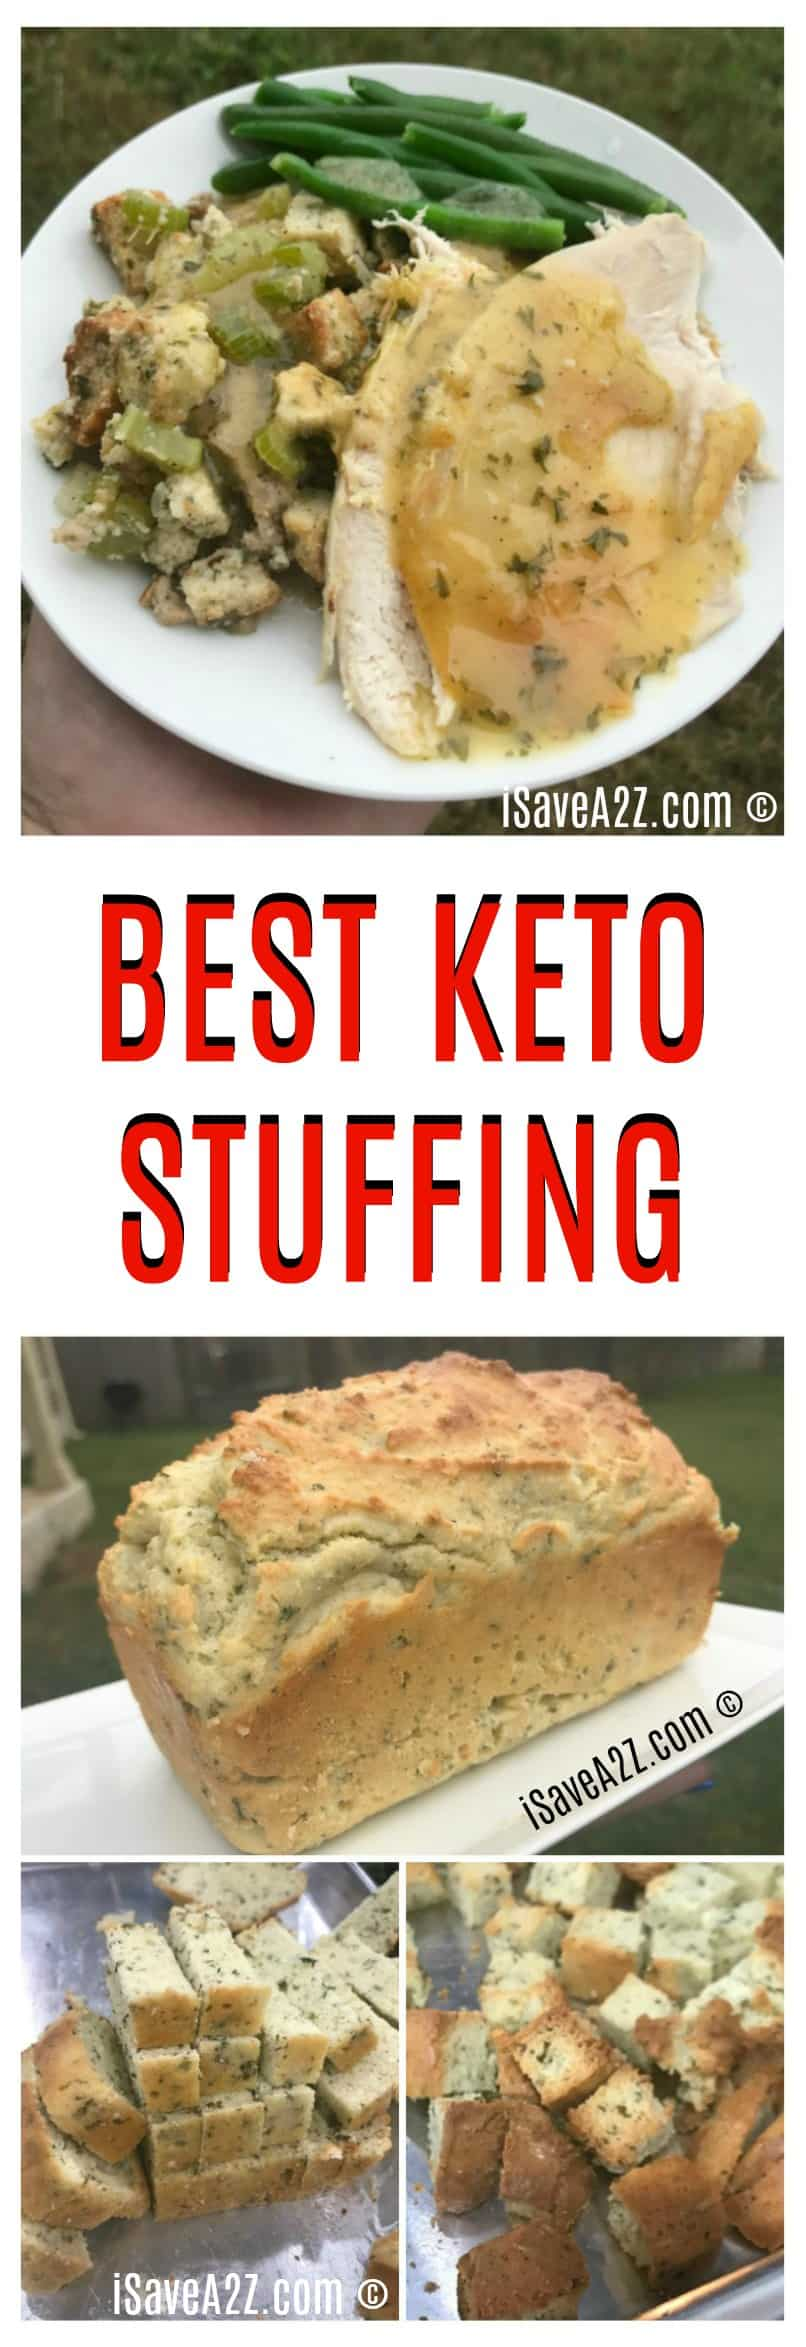 Best Keto Stuffing Recipe